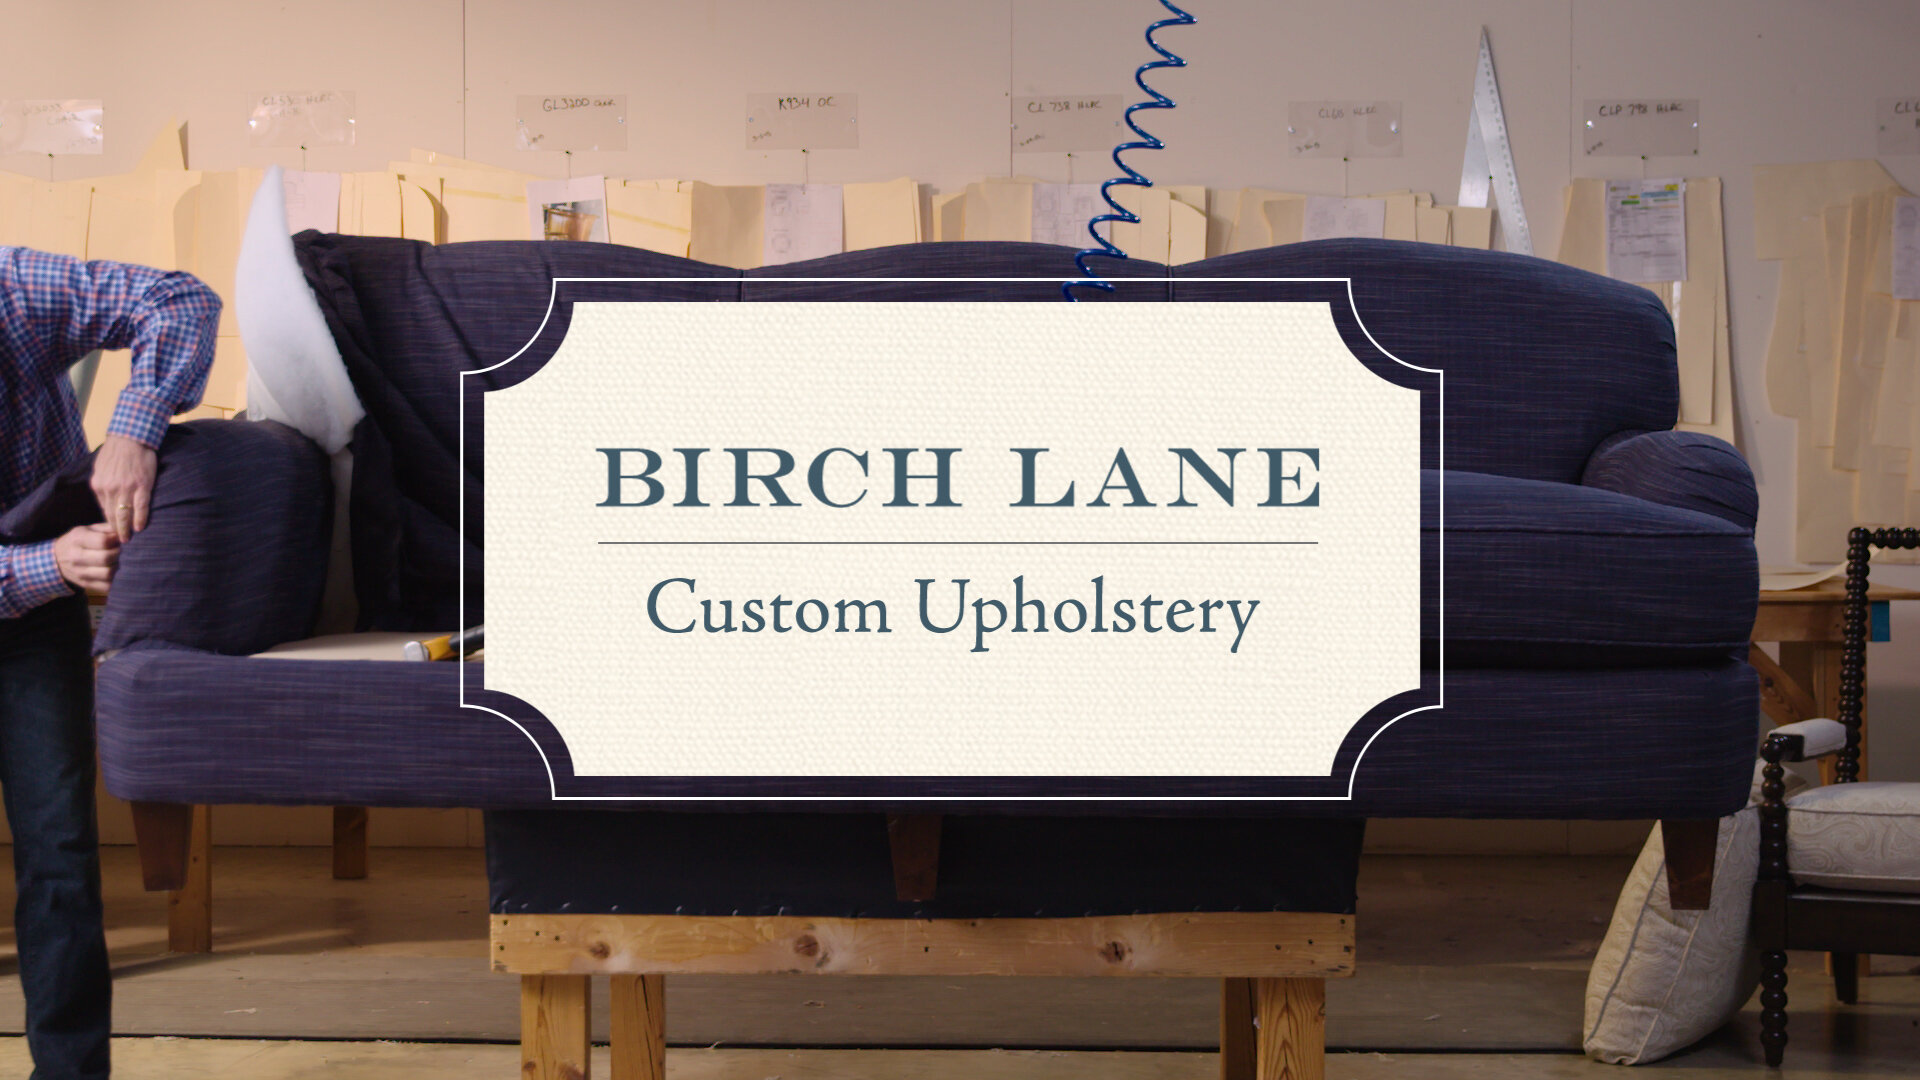 birch lane sofa. Birch Lane Sofa W